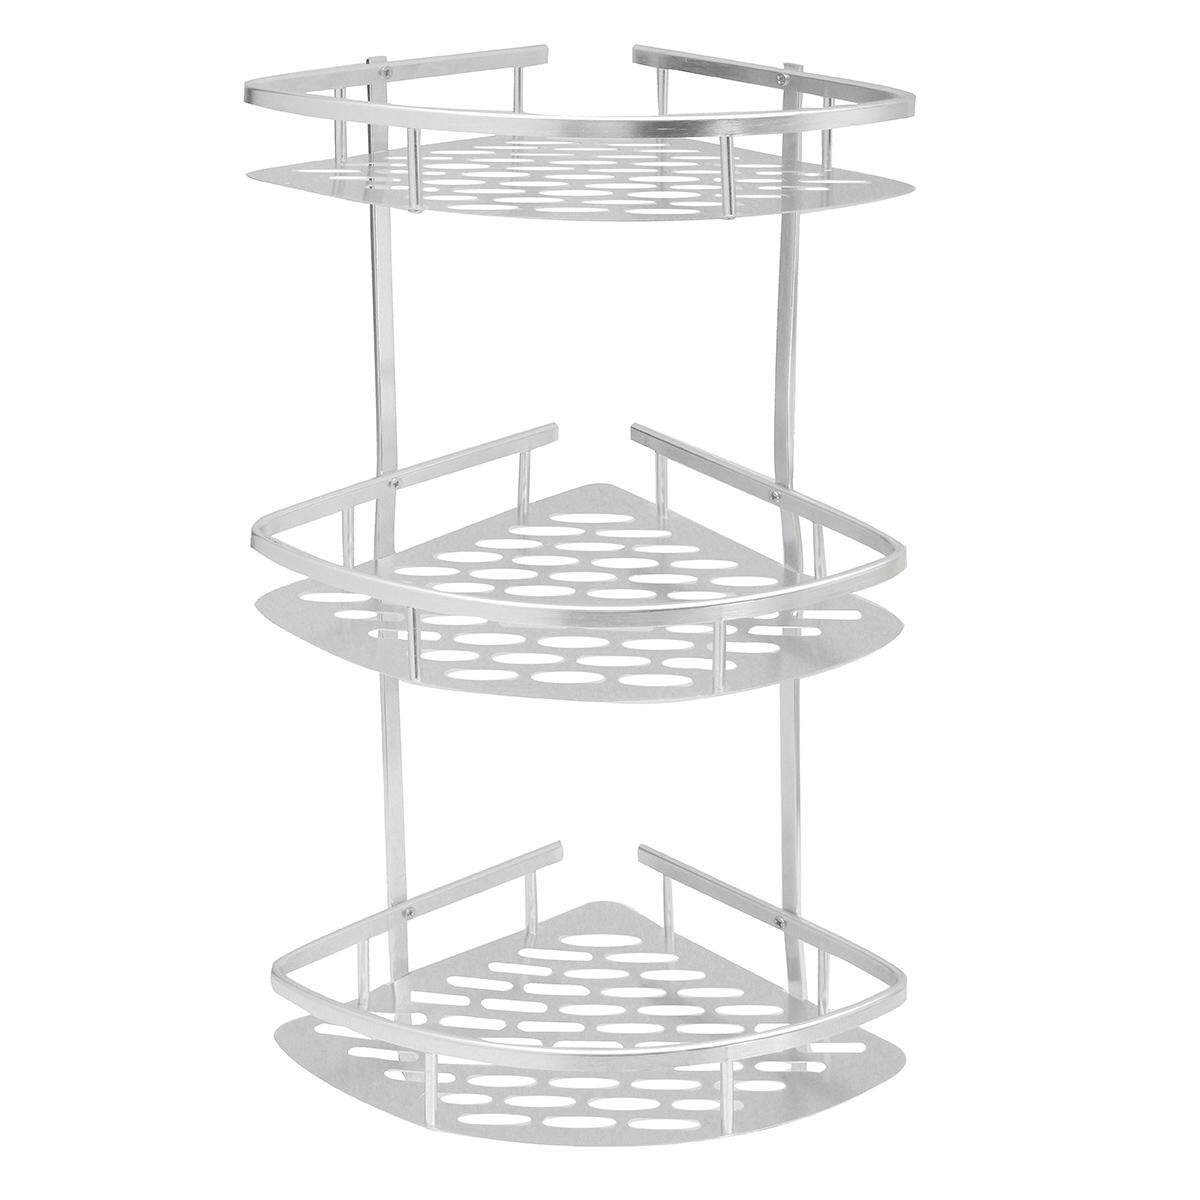 Triangular Shower Caddy Shelf Bathroom Wall Corner Rack Storage Organizer Holder By Audew.